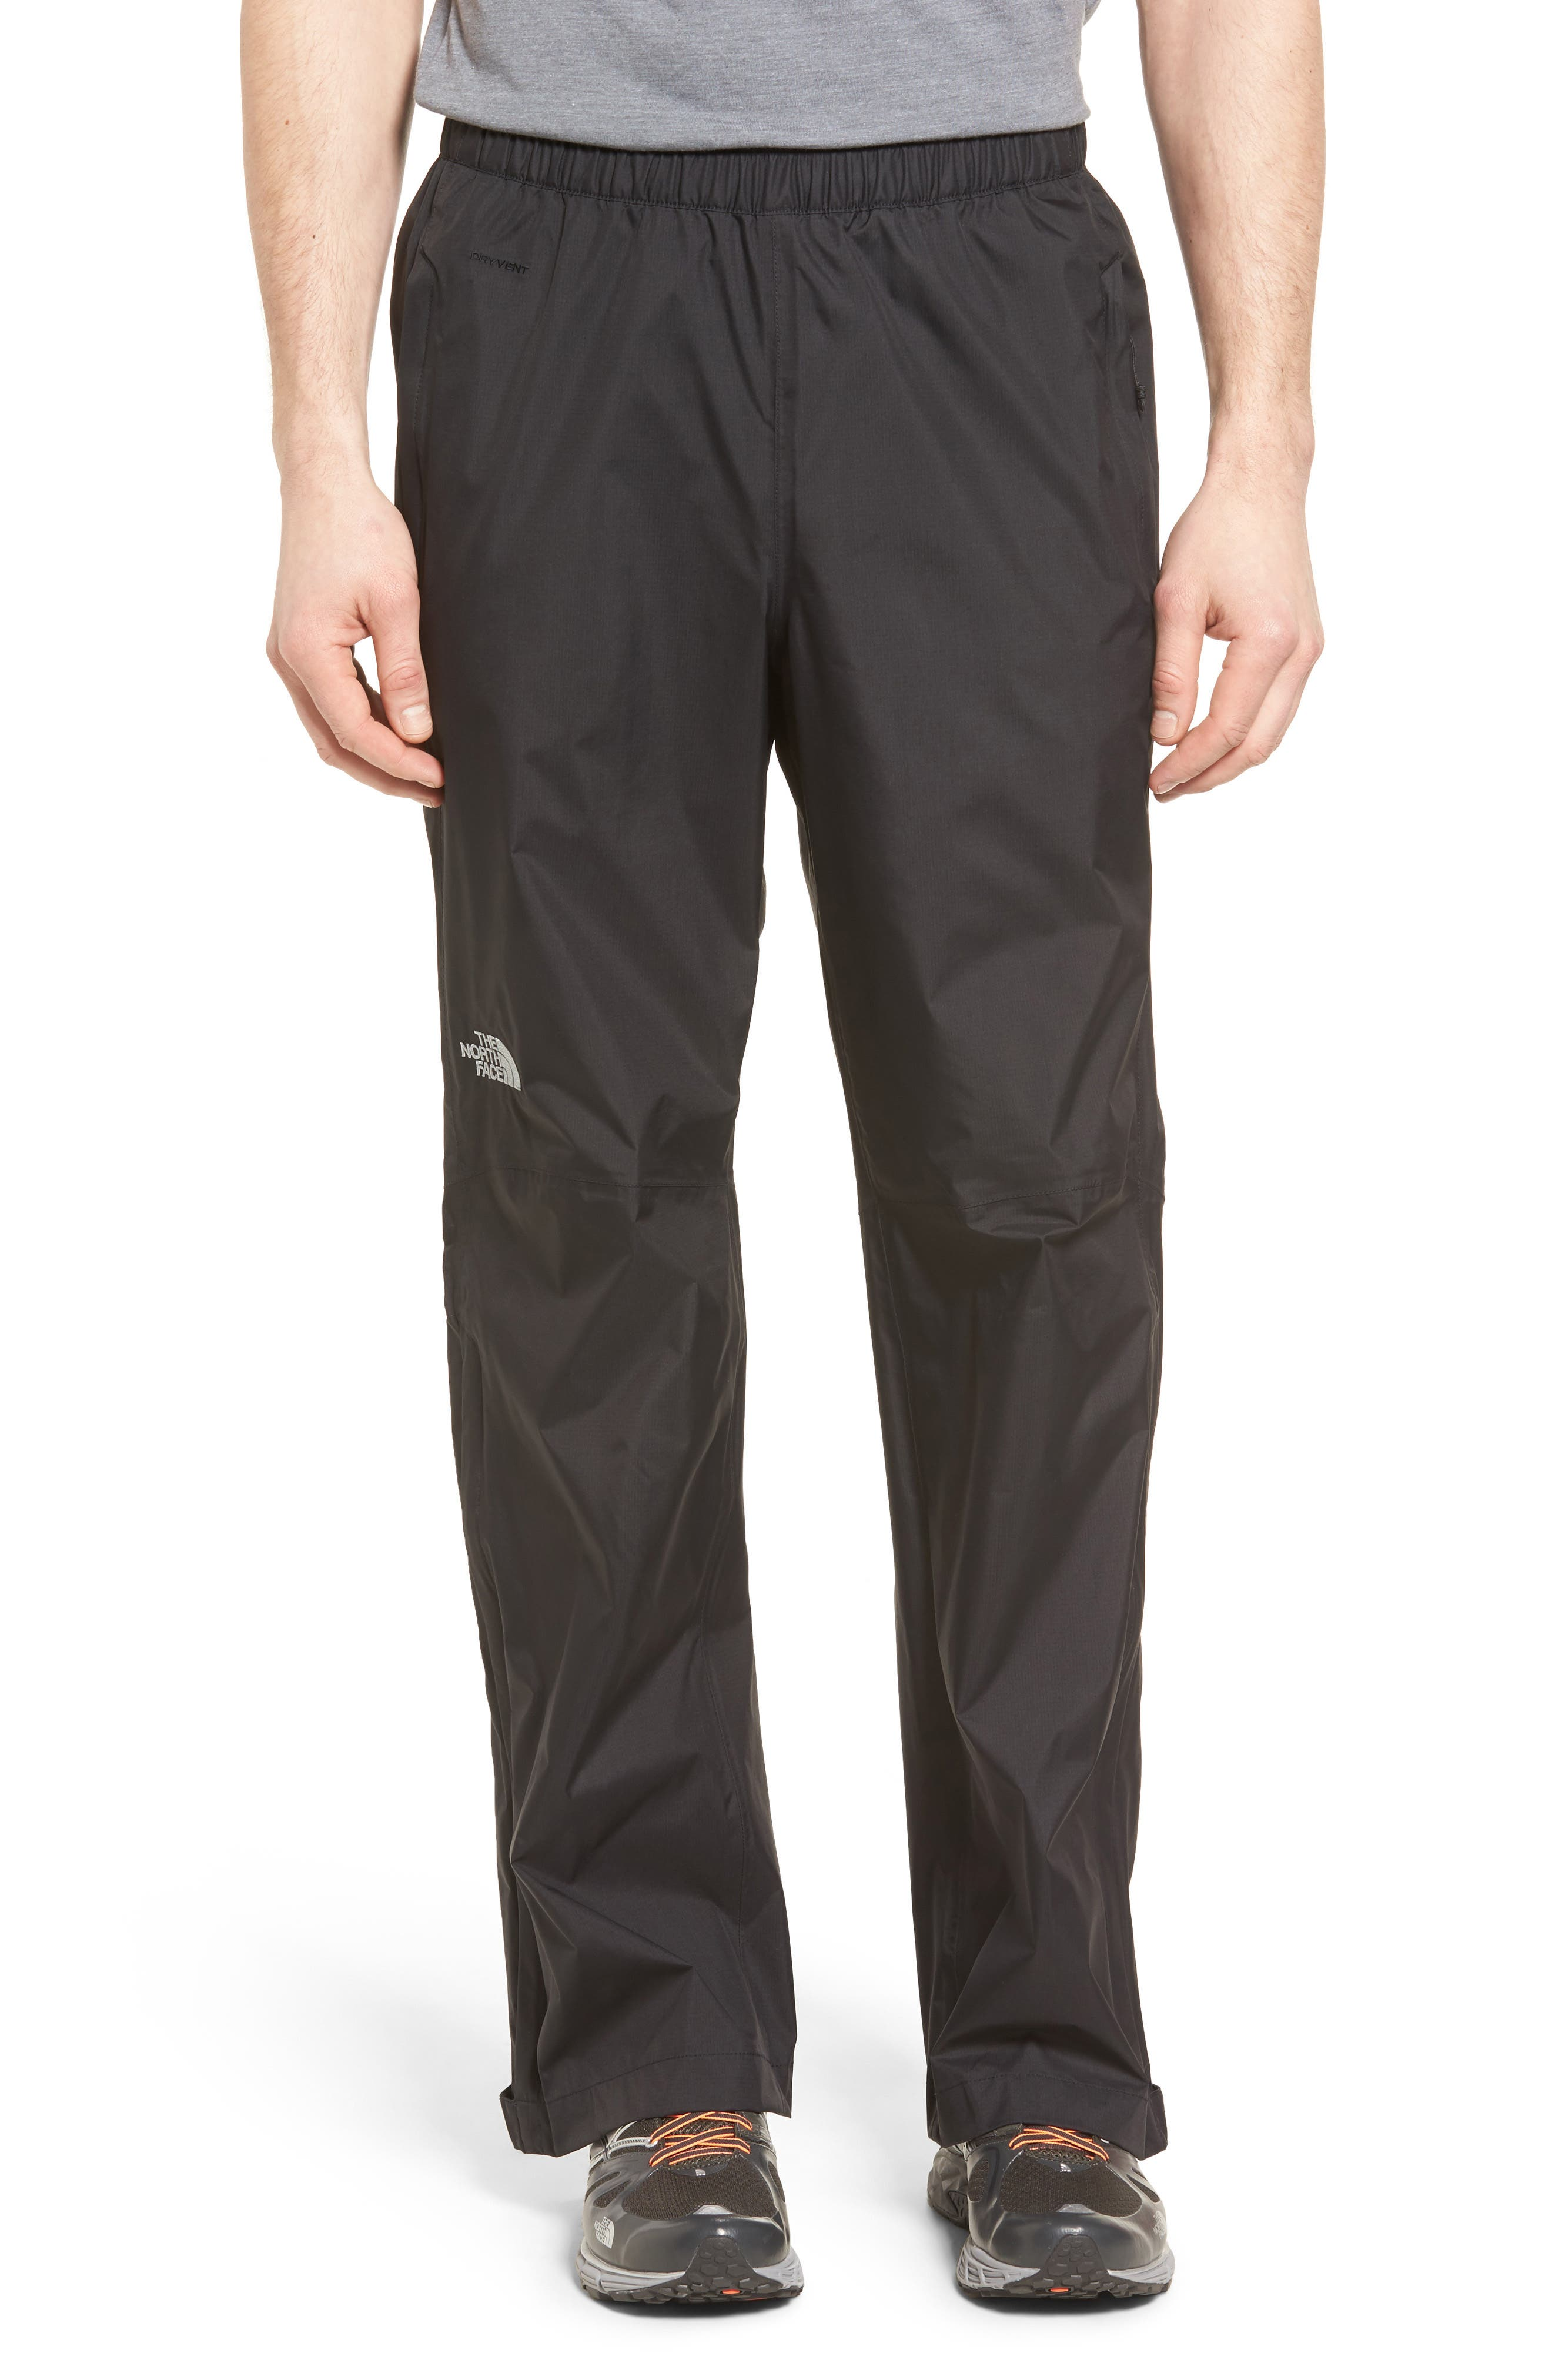 Main Image - The North Face Venture Waterproof Pants